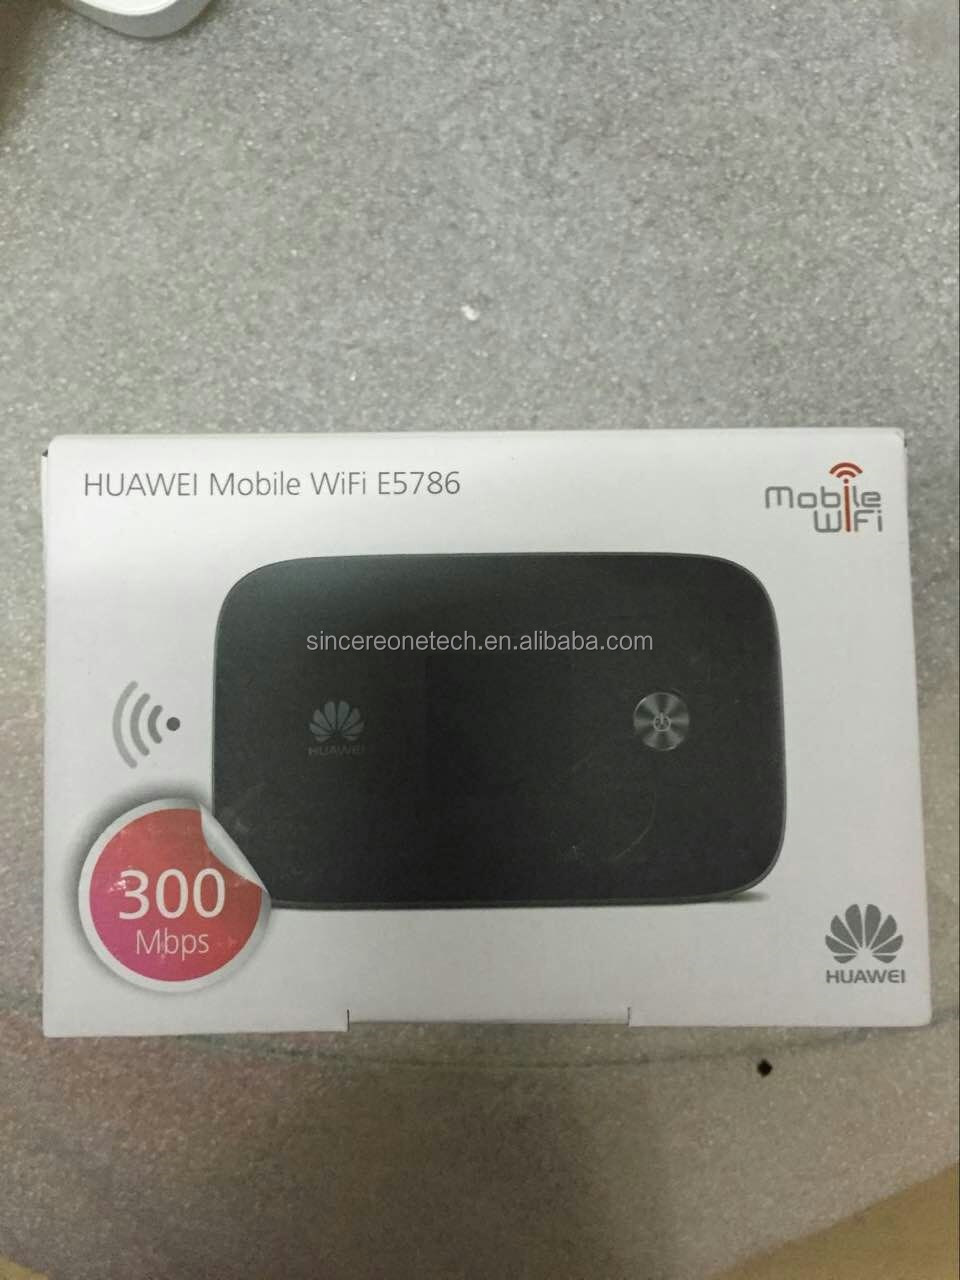 Huawei E5186 4g Cat6 Cpe Router E5186s-61a - Buy E5186,E5786s-61a,Cat6 Lte  Wifi Router Product on Alibaba com